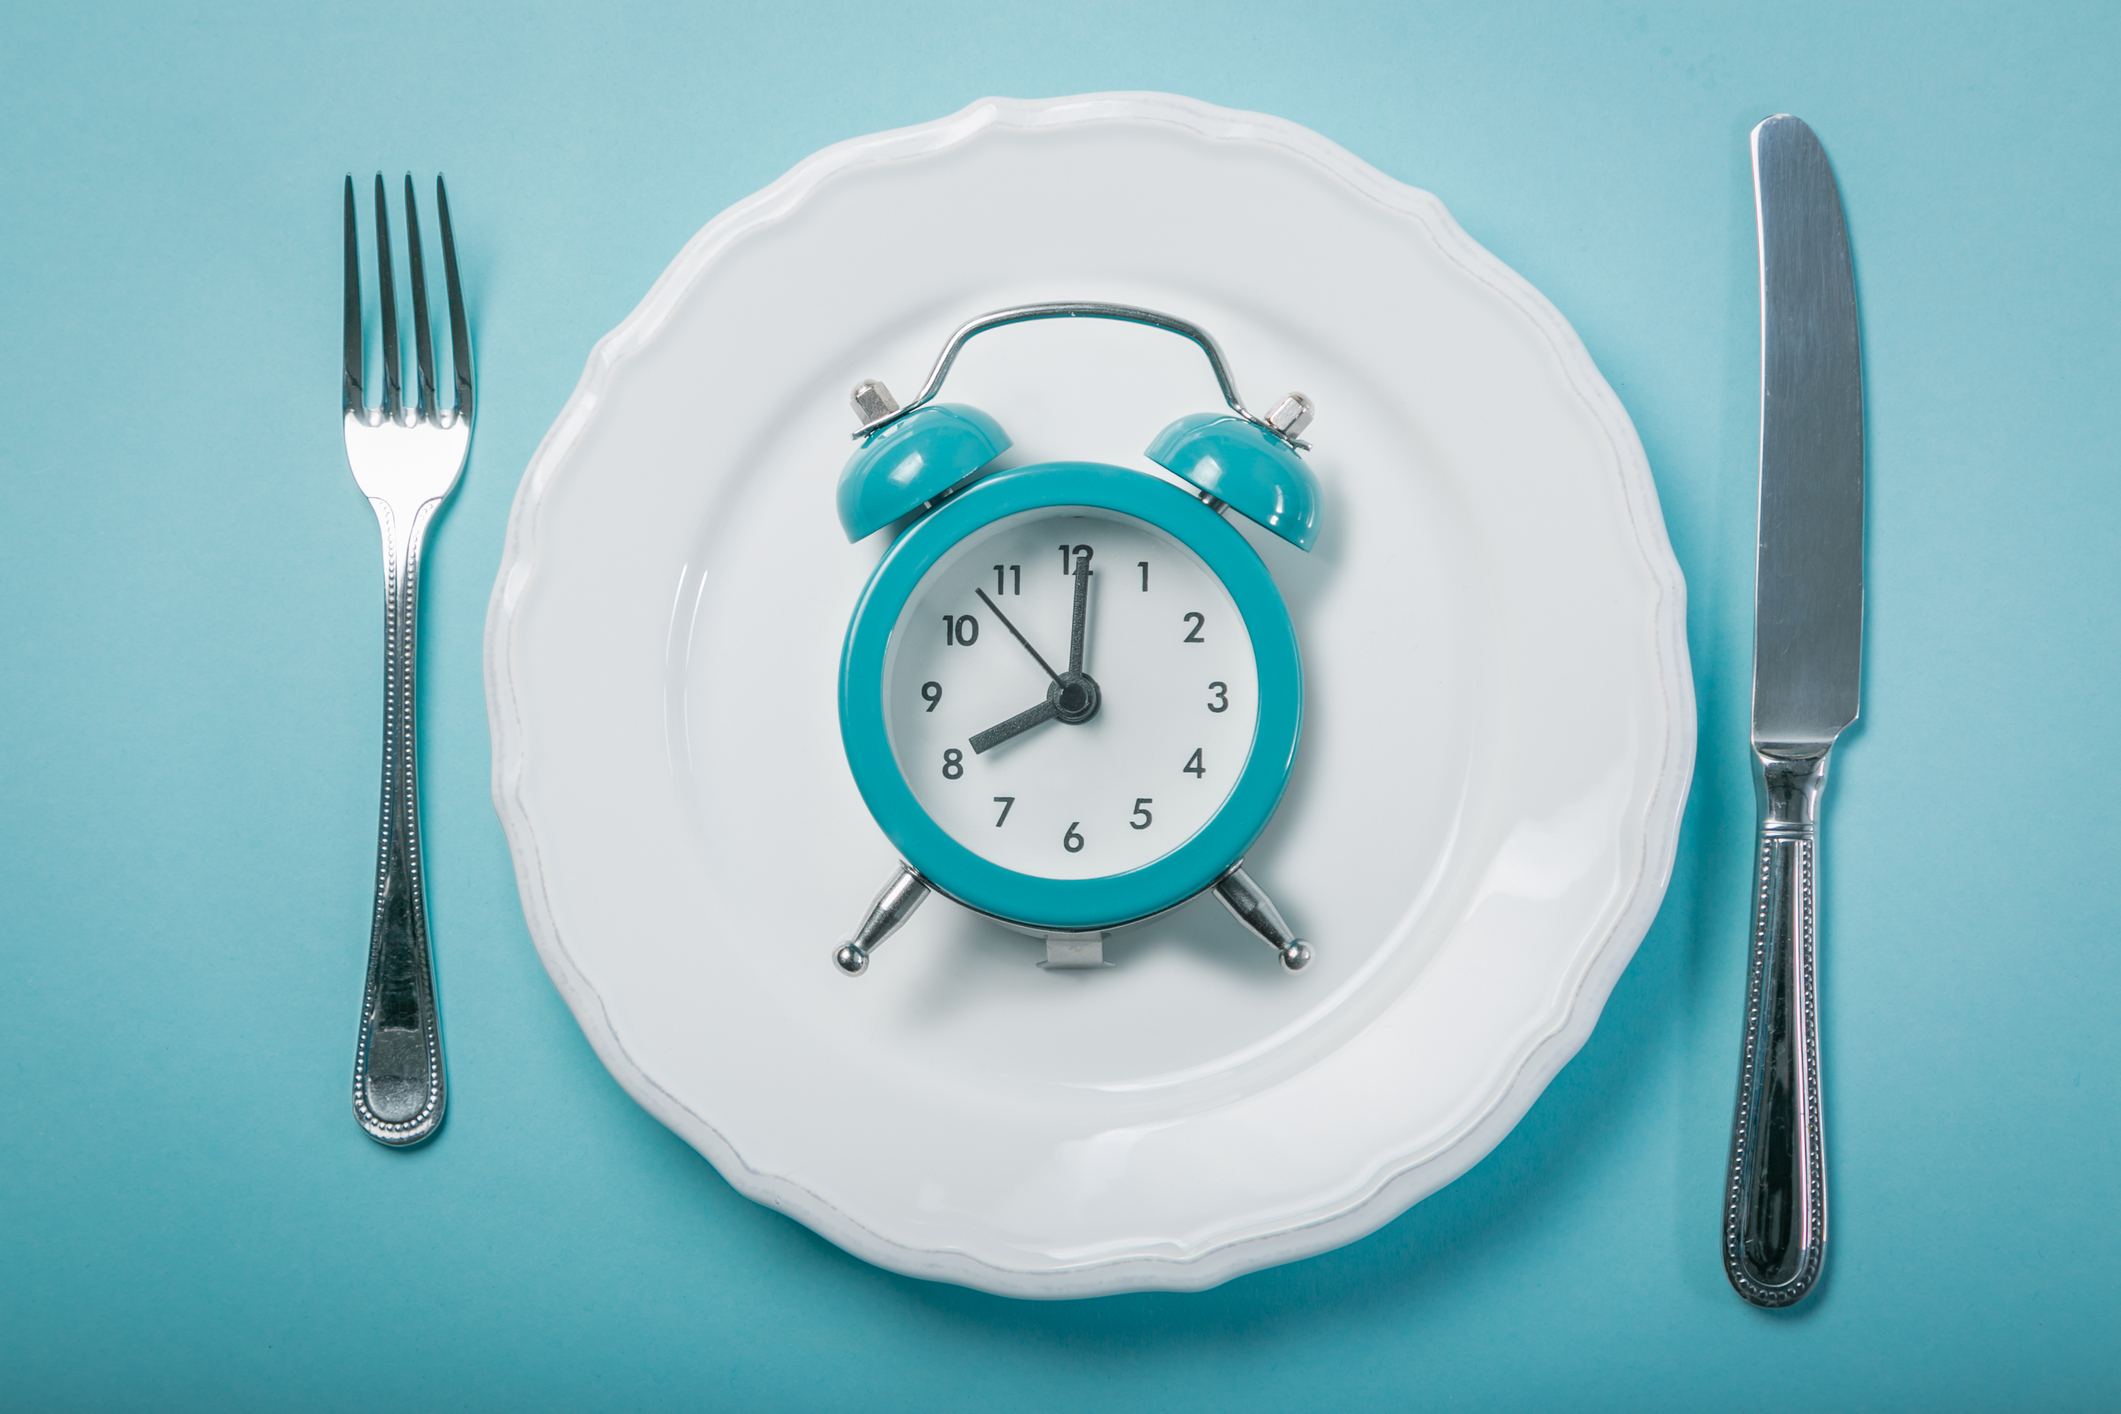 Intermittent fasting benefits of an Ageless Wellness Lifestyle